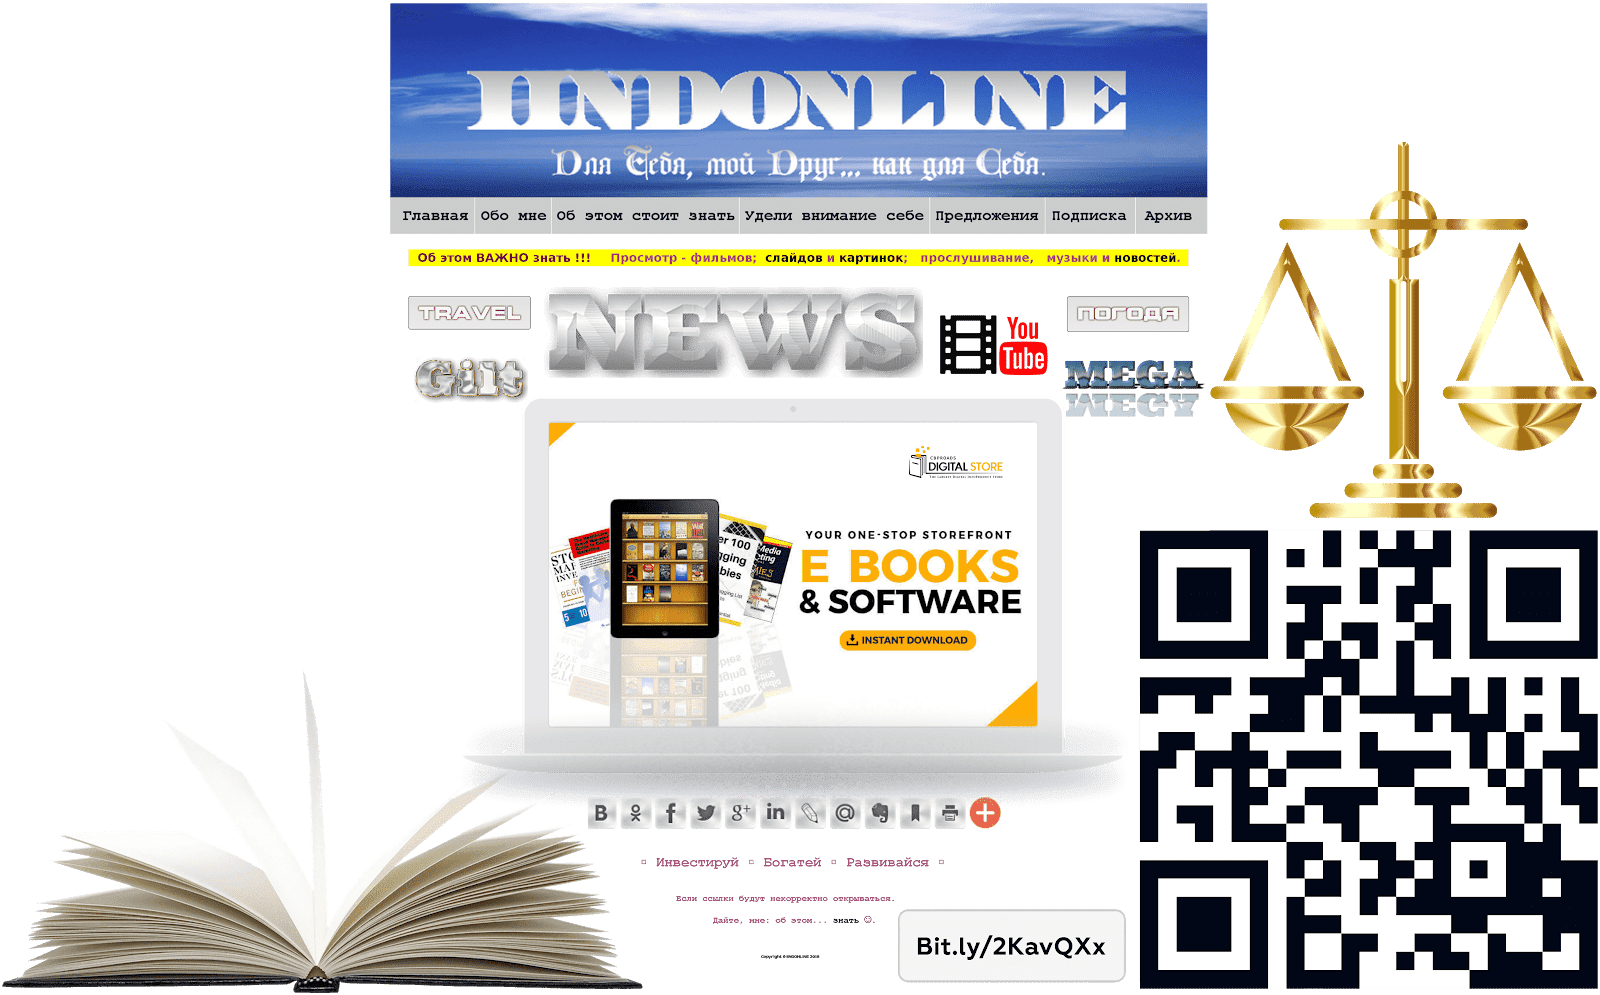 The Largest Digital Infoproduct Store. Digital knowledge for solves various tasks ☼.